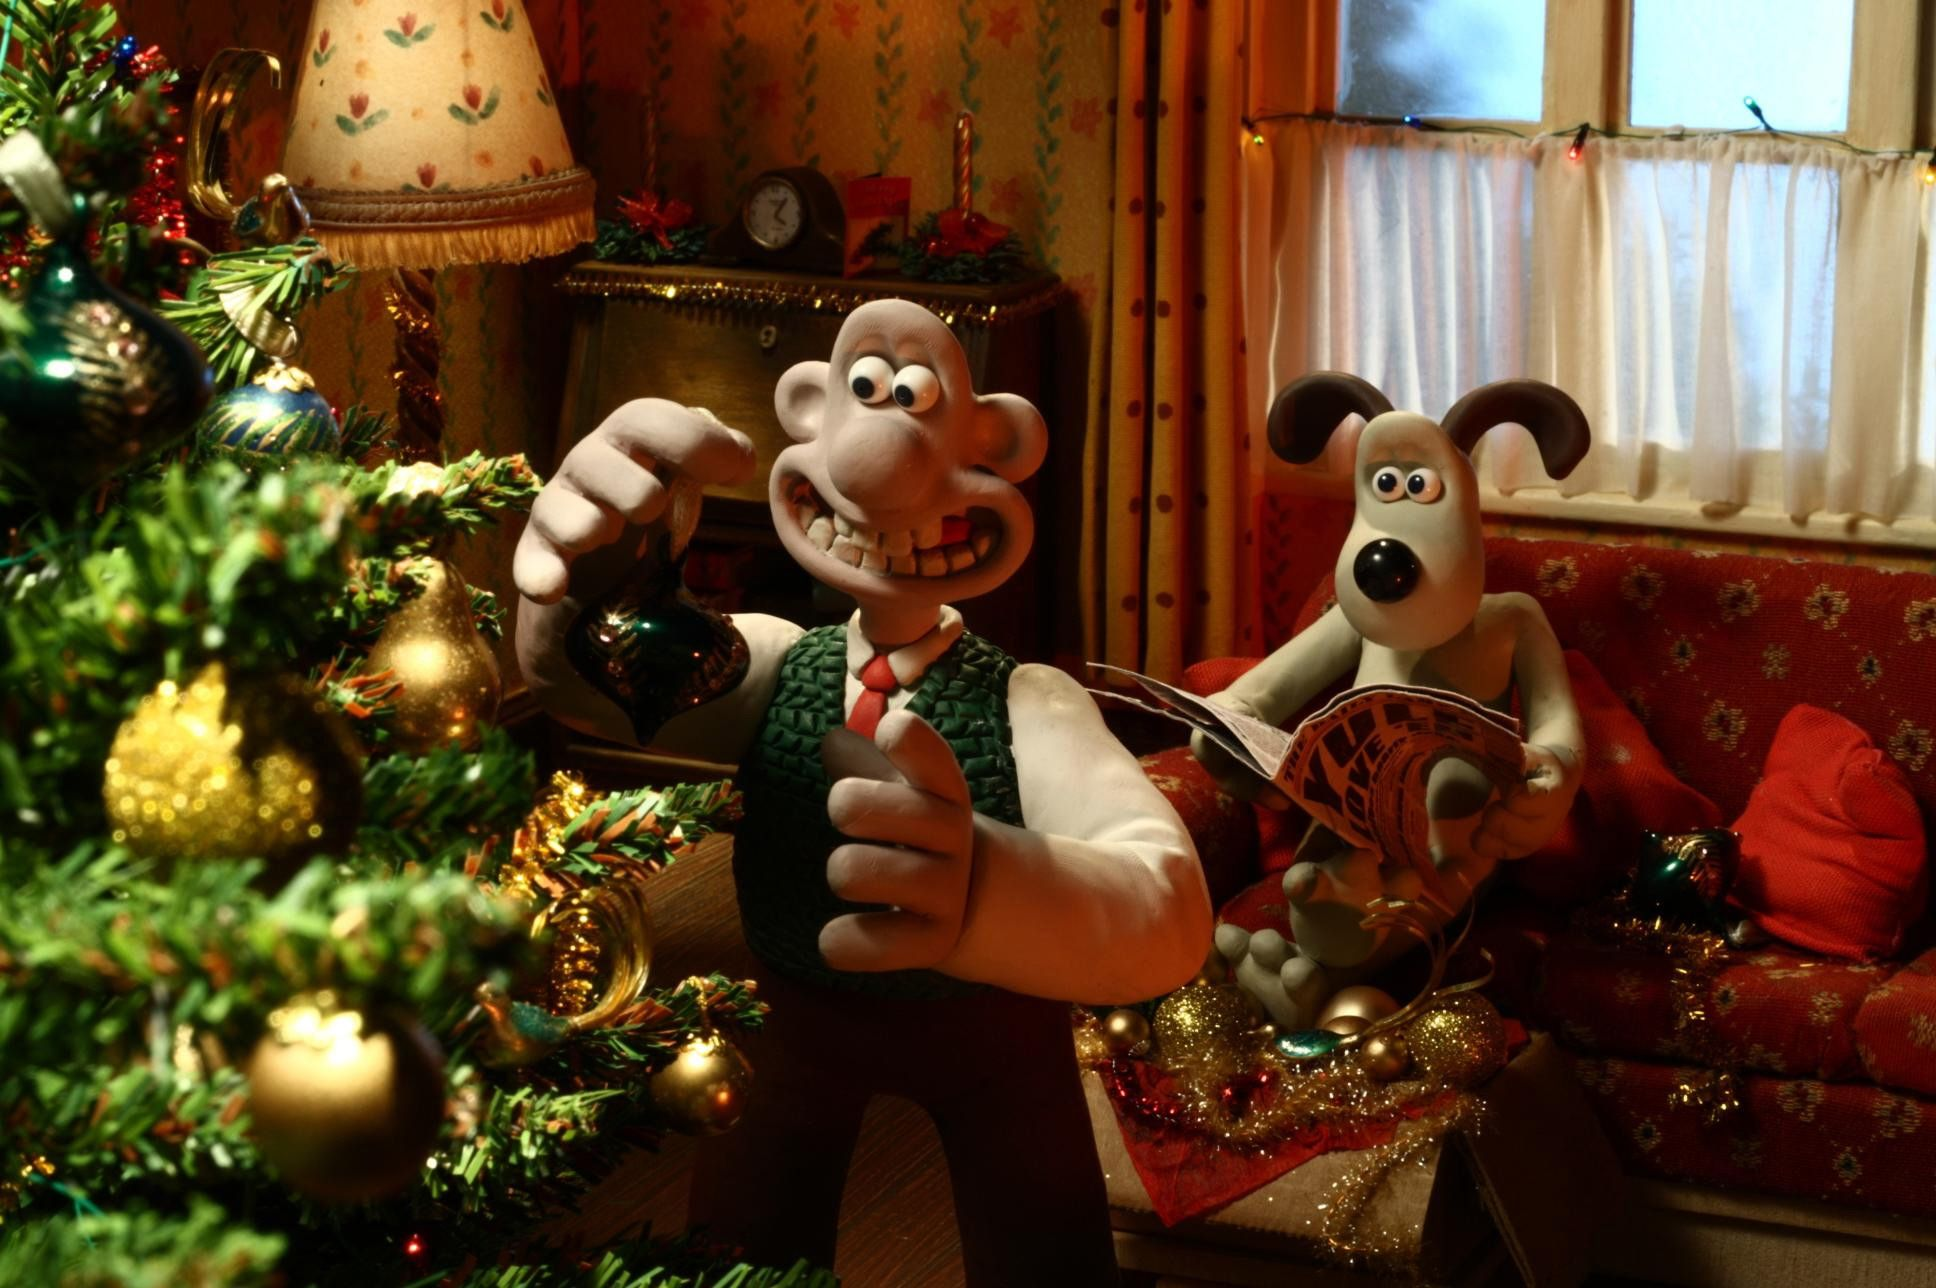 If you love the old Wallace and Gromit animations, you will ...